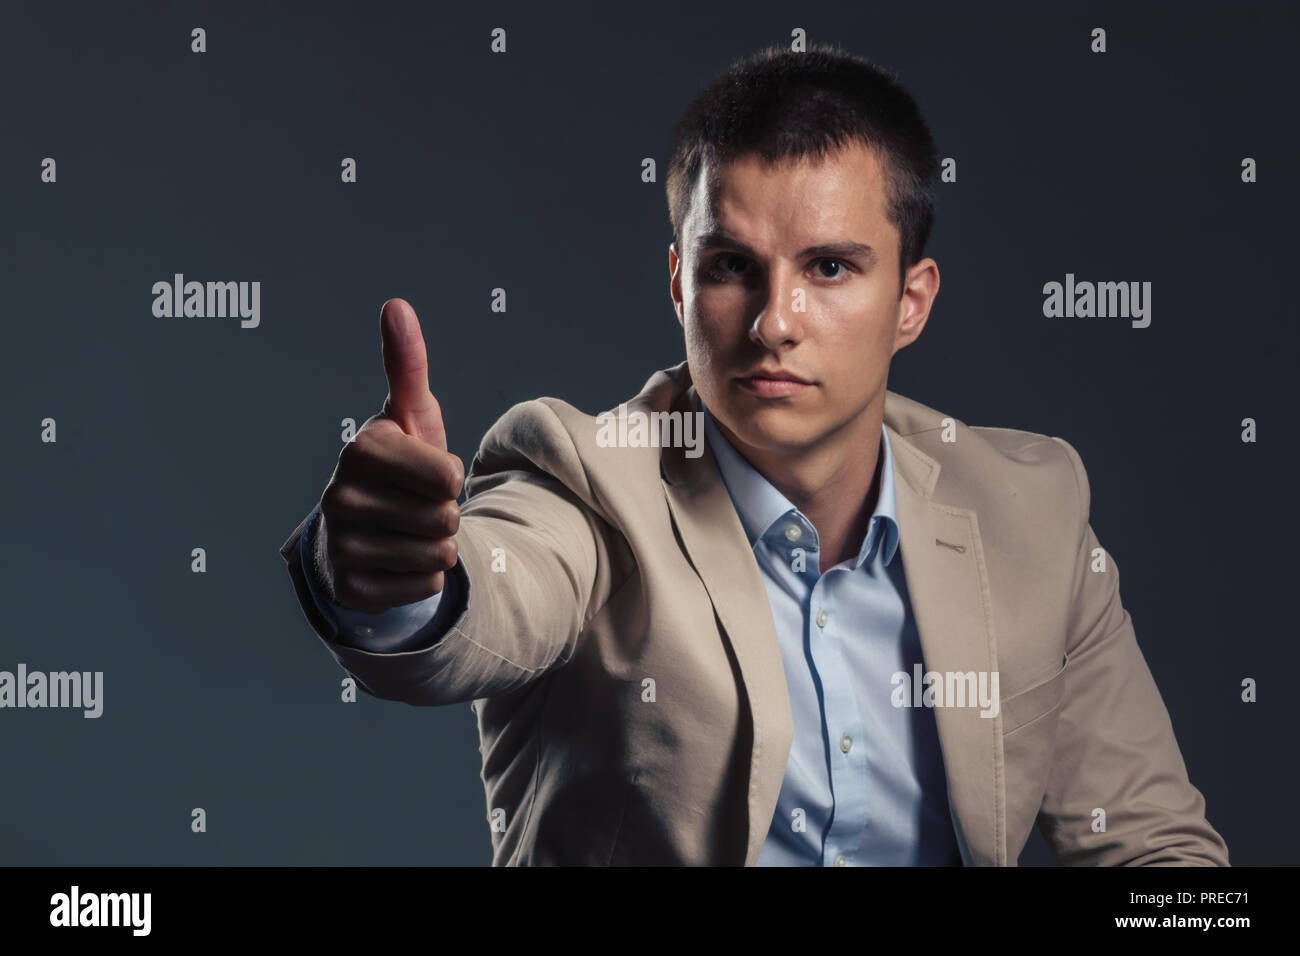 Young Handsome Businessman showing thumb up. Business Concept. - Stock Image